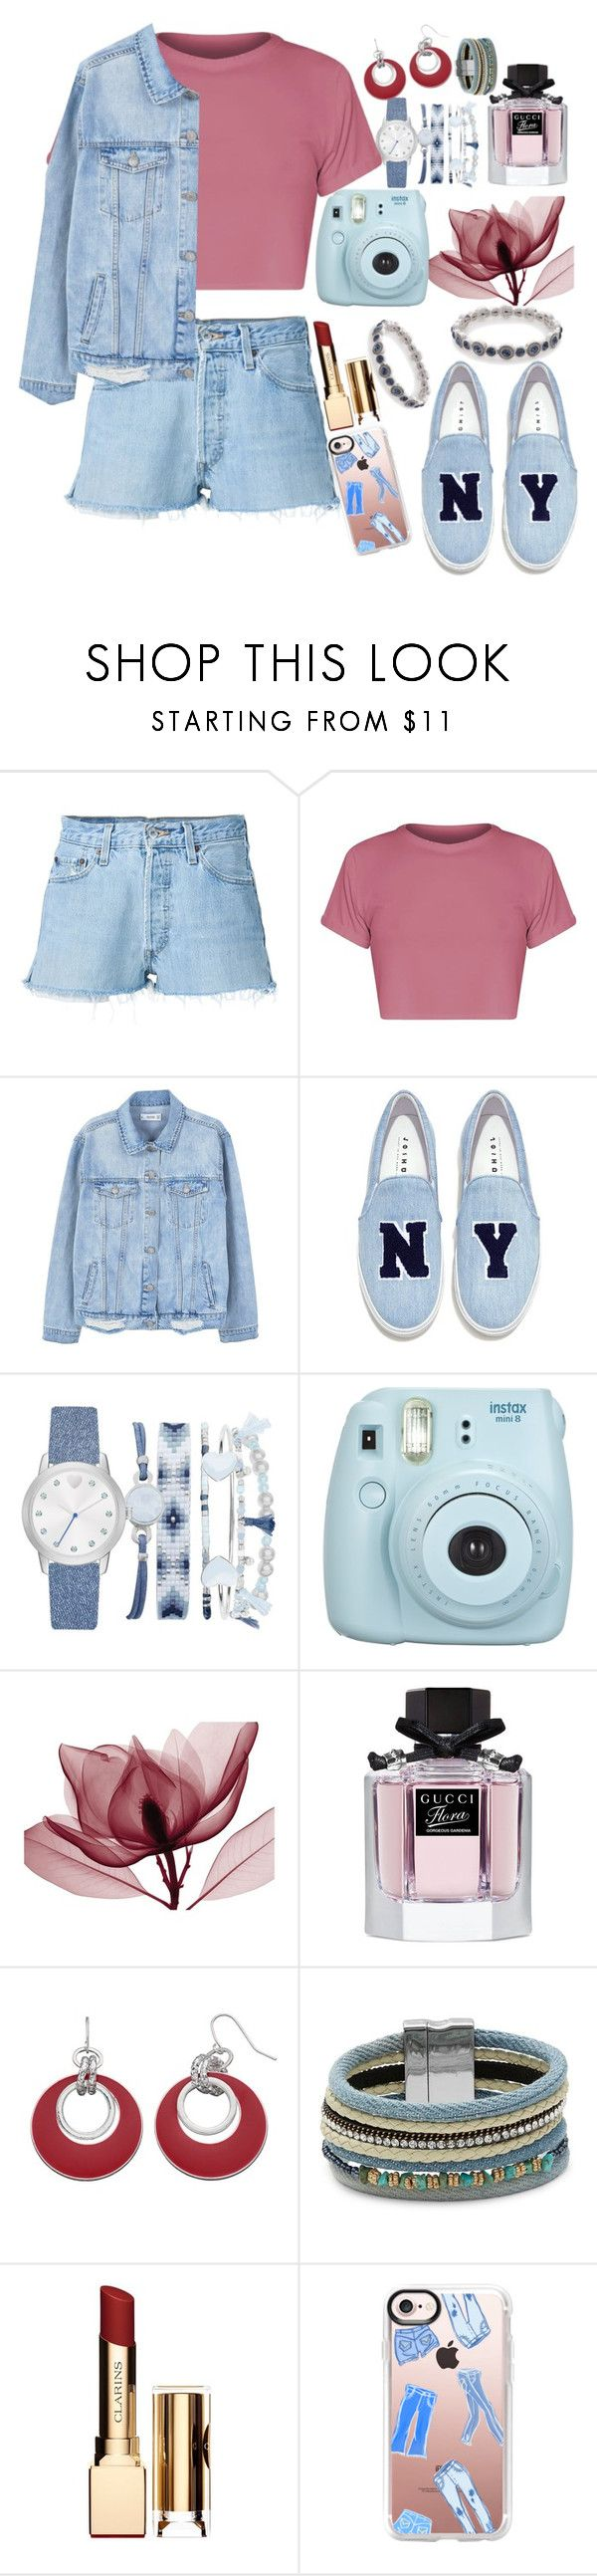 """""""denim"""" by adibah-ghulami ❤ liked on Polyvore featuring RE/DONE, MANGO, Joshua's, A.X.N.Y., Fujifilm, Gucci, Design Lab, Clarins, Casetify and Napier"""